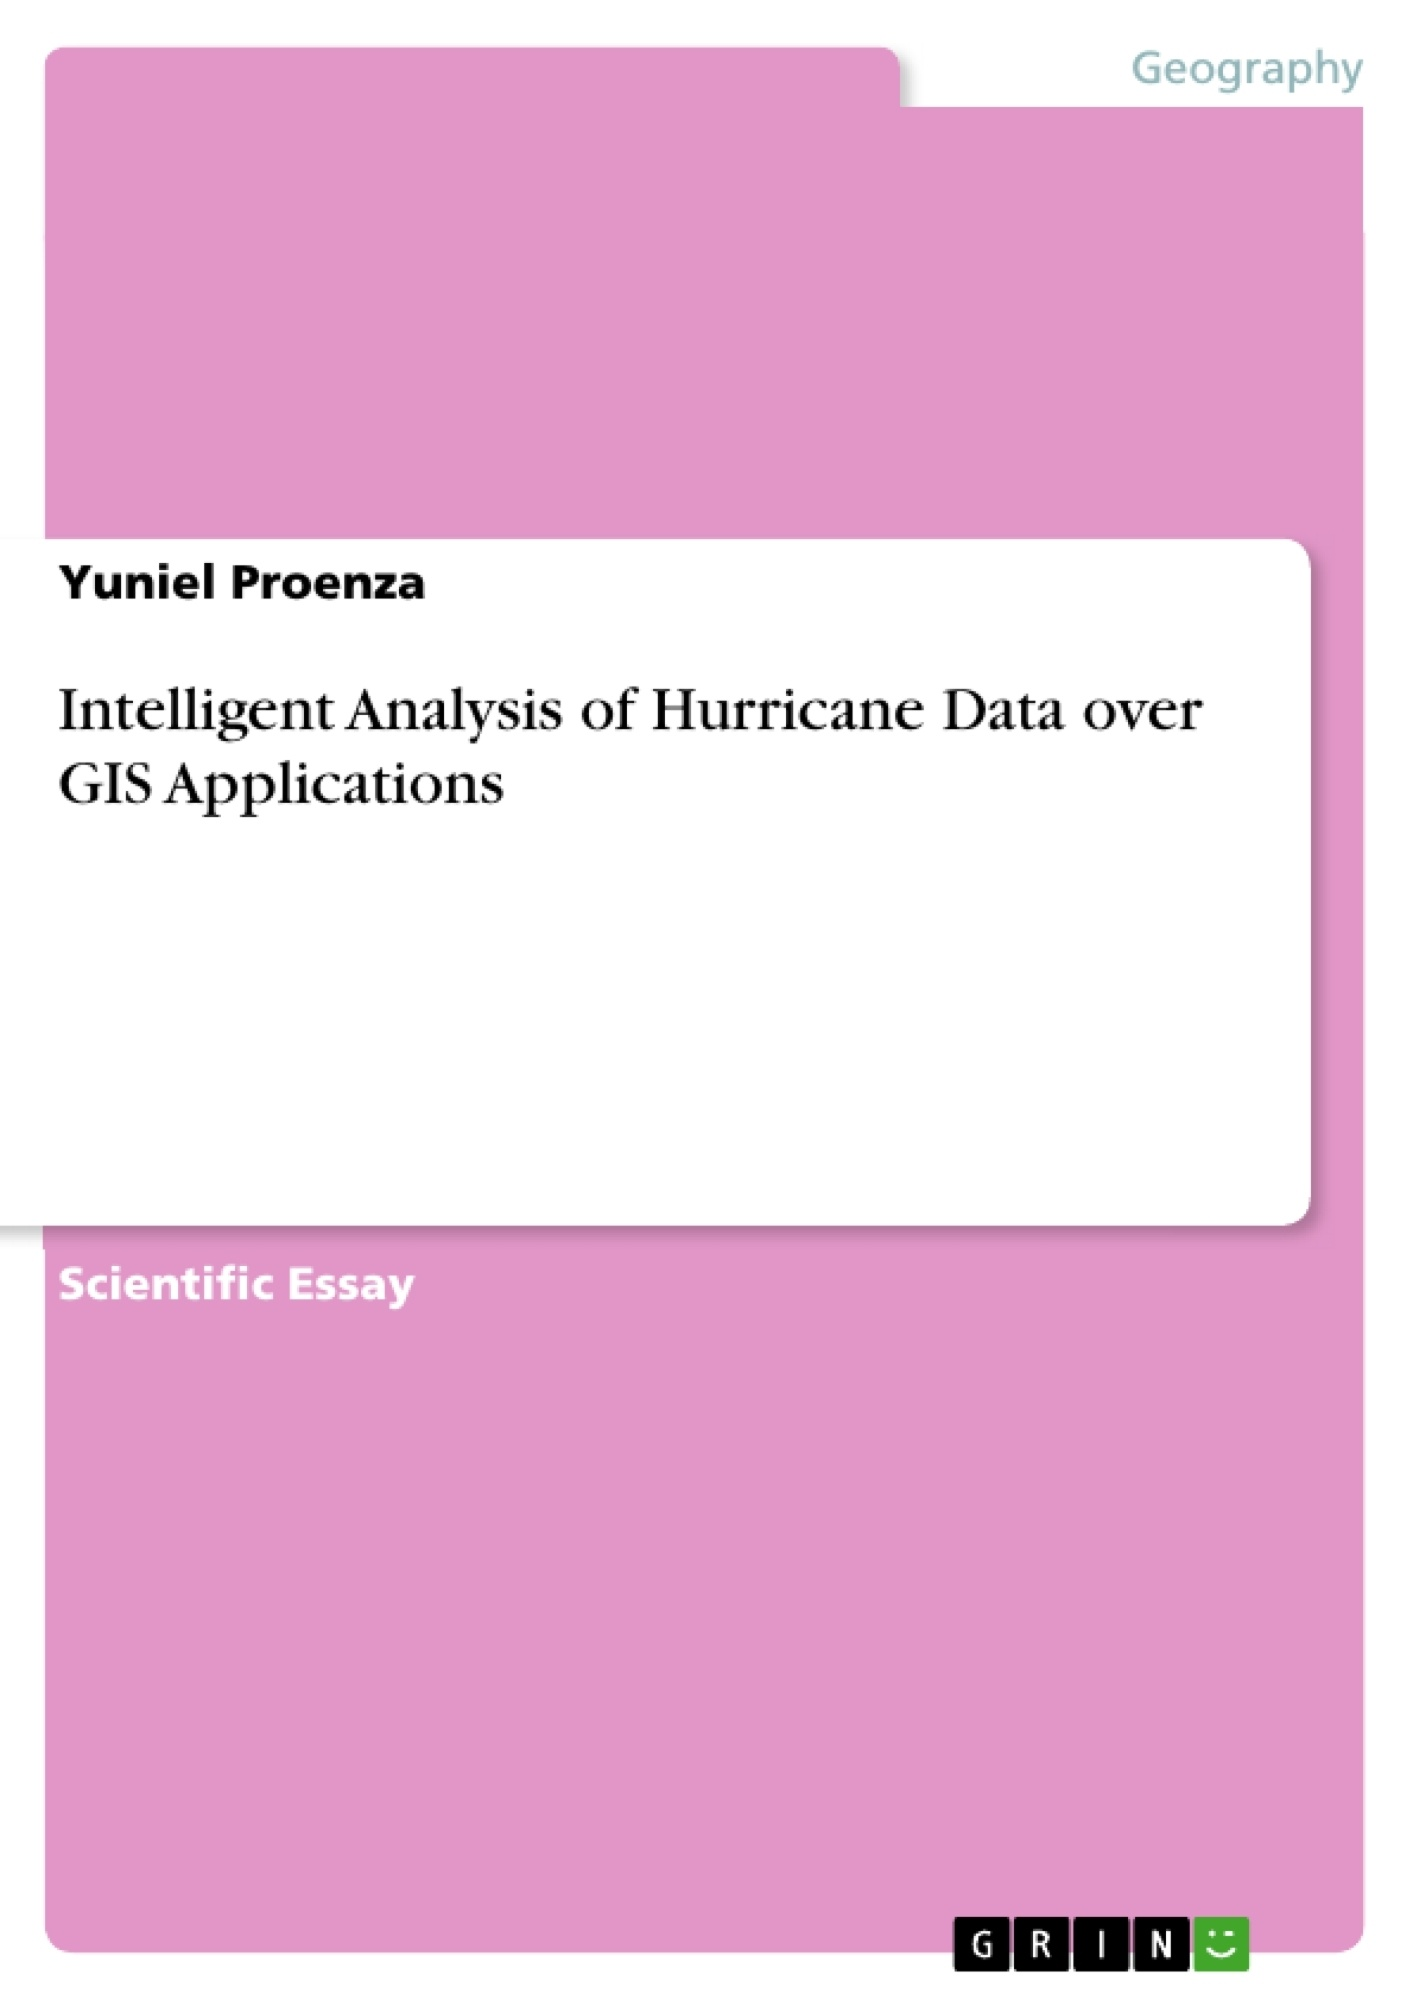 Title: Intelligent Analysis of Hurricane Data over GIS Applications